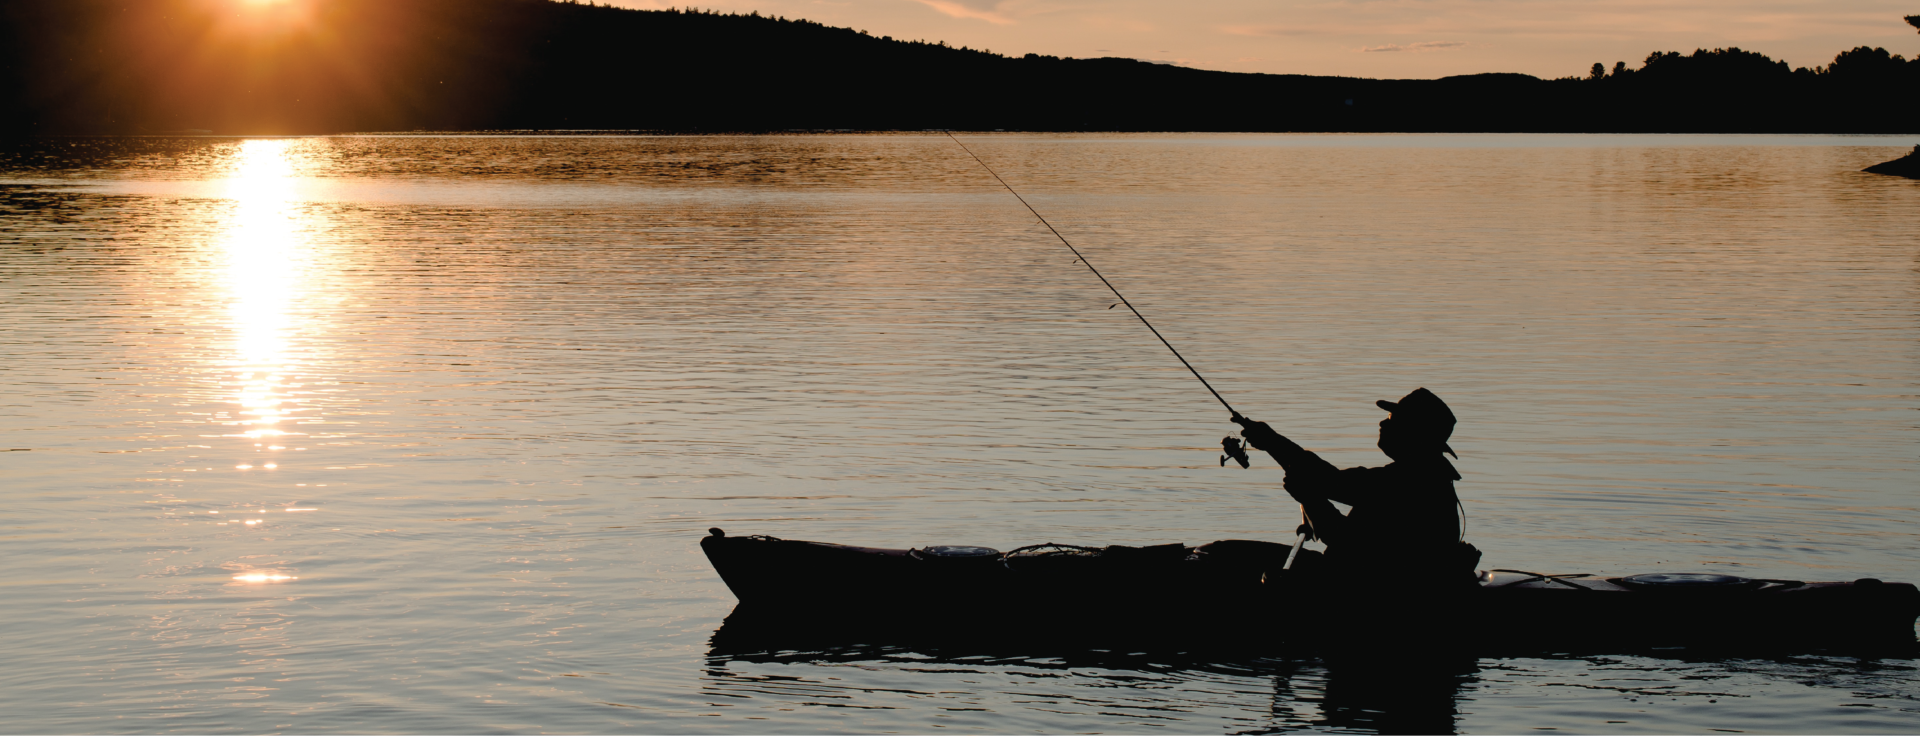 Silhouette of one person in a boat fishing in the middle of lake